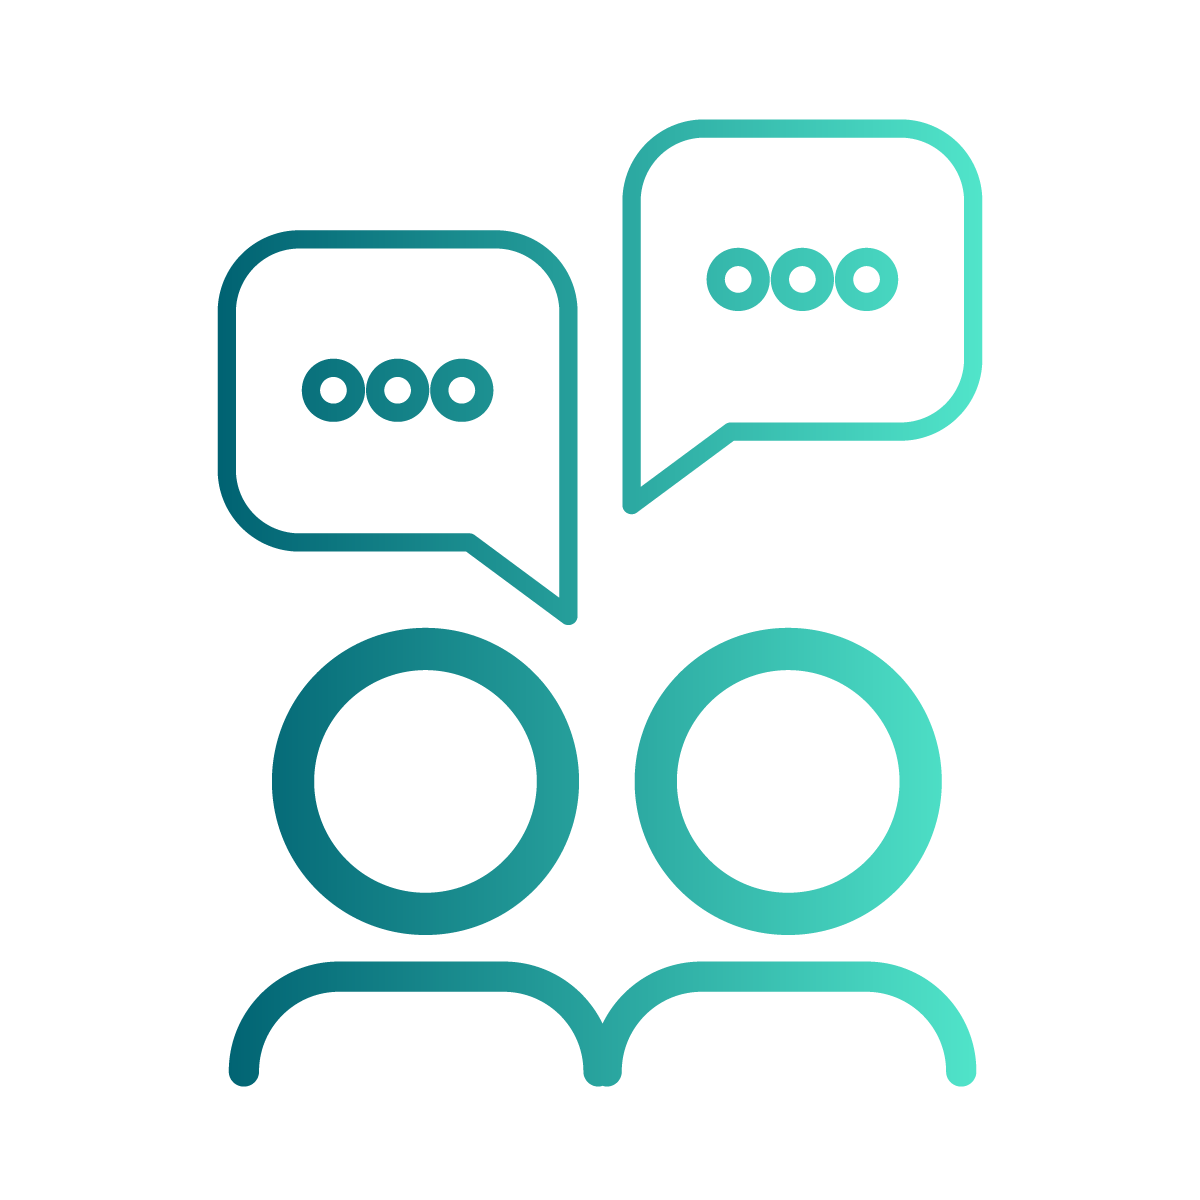 Two people speaking icon